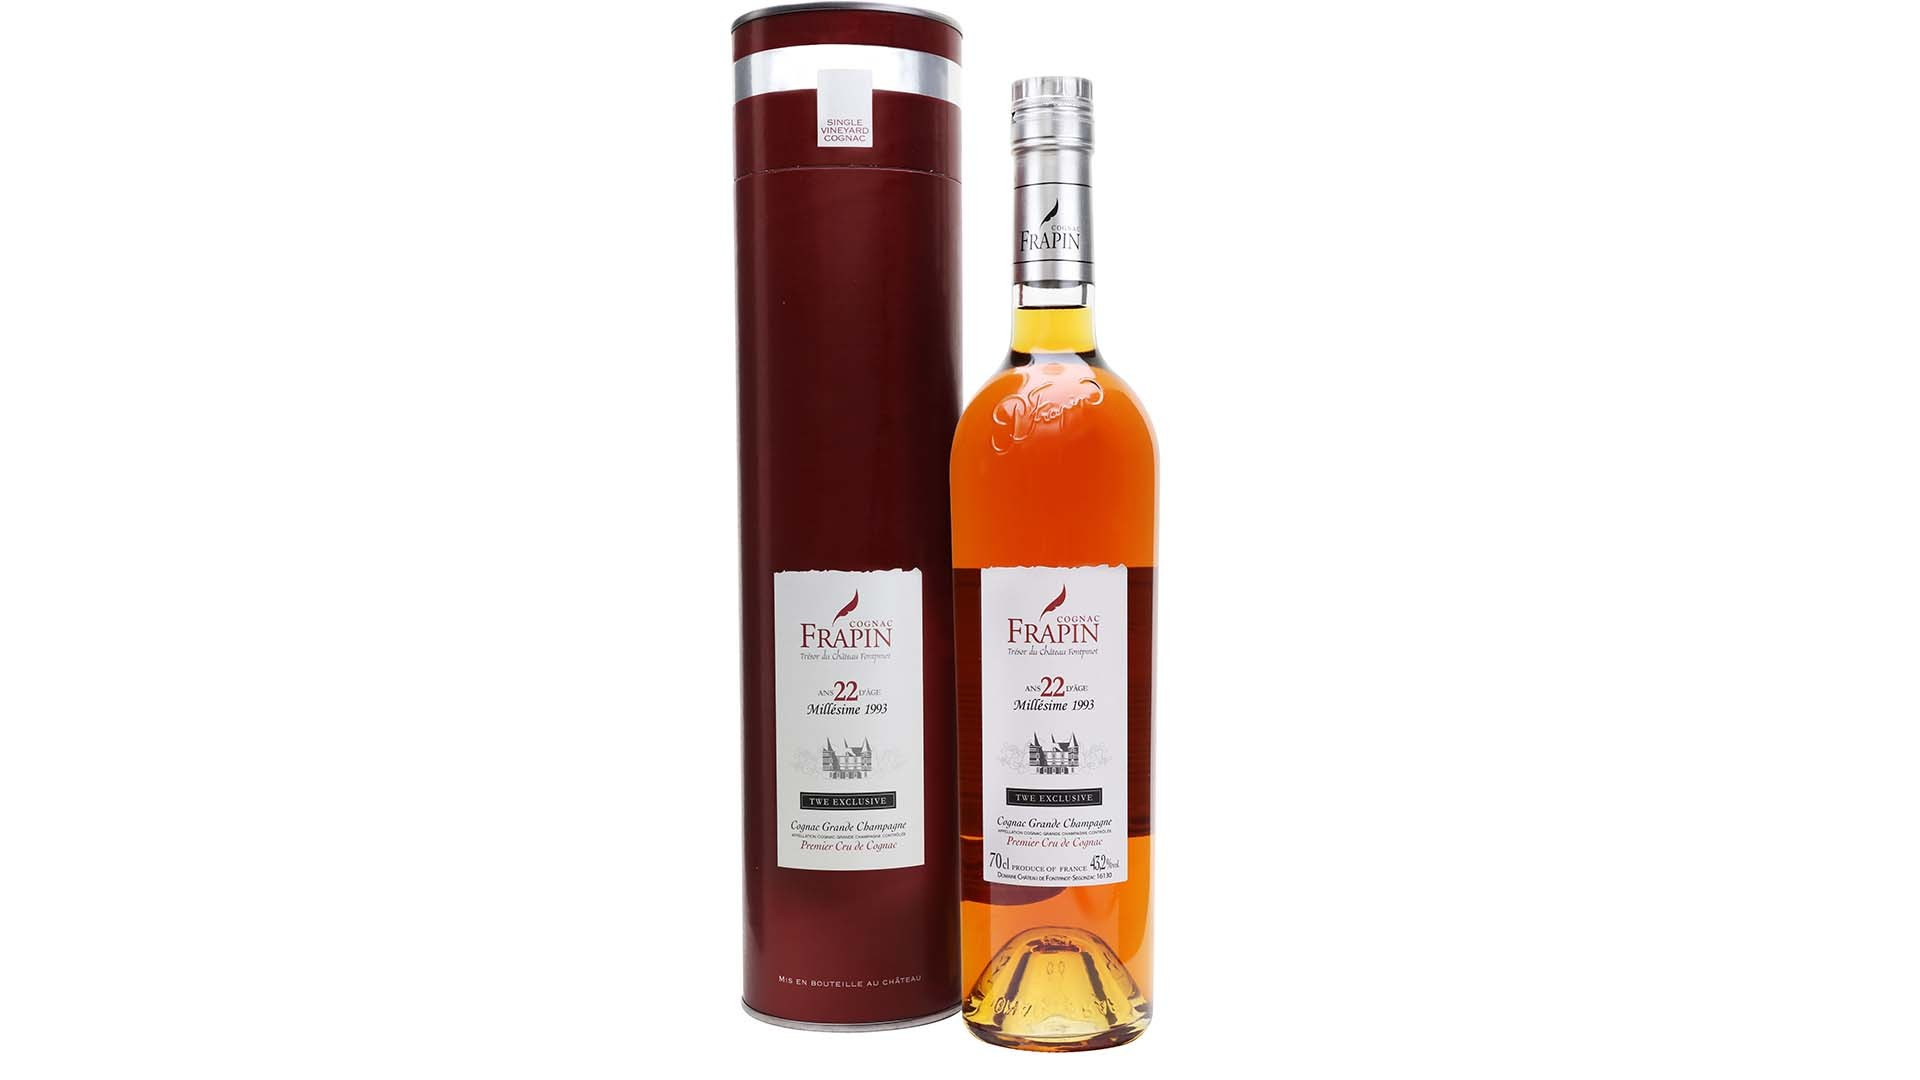 Frapin 1993, The Whisky Exchange exclusive